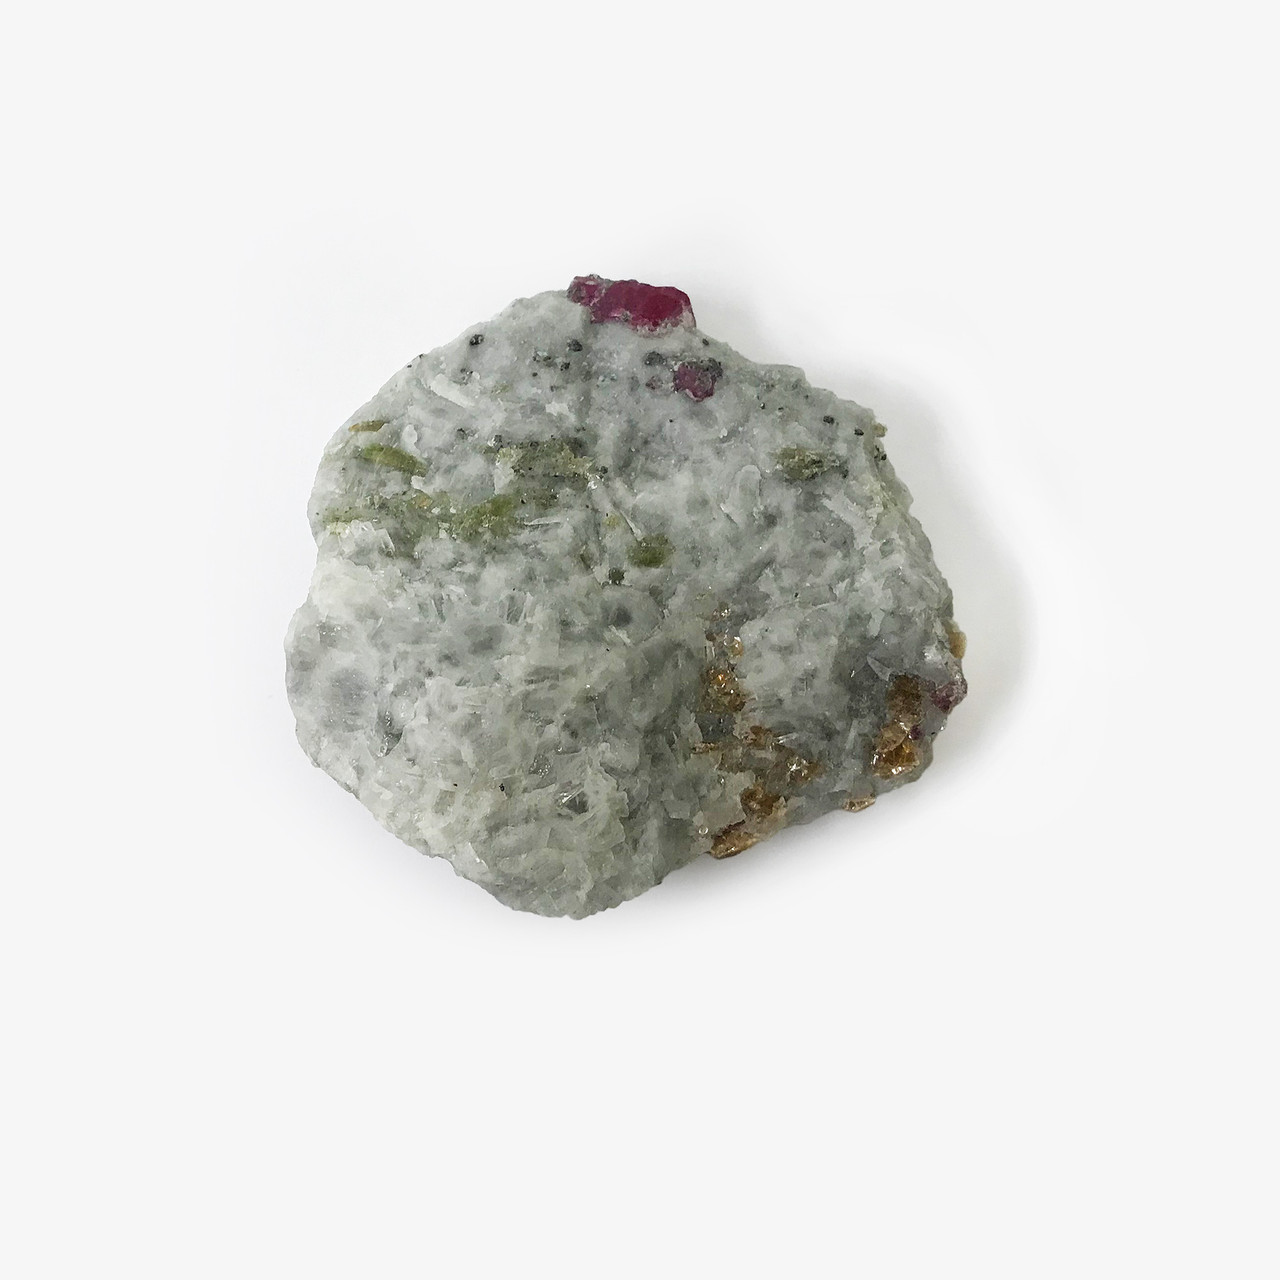 Flat and Unique Rough Ruby Crystal Gemstone Mineral Specimen from Pakistan